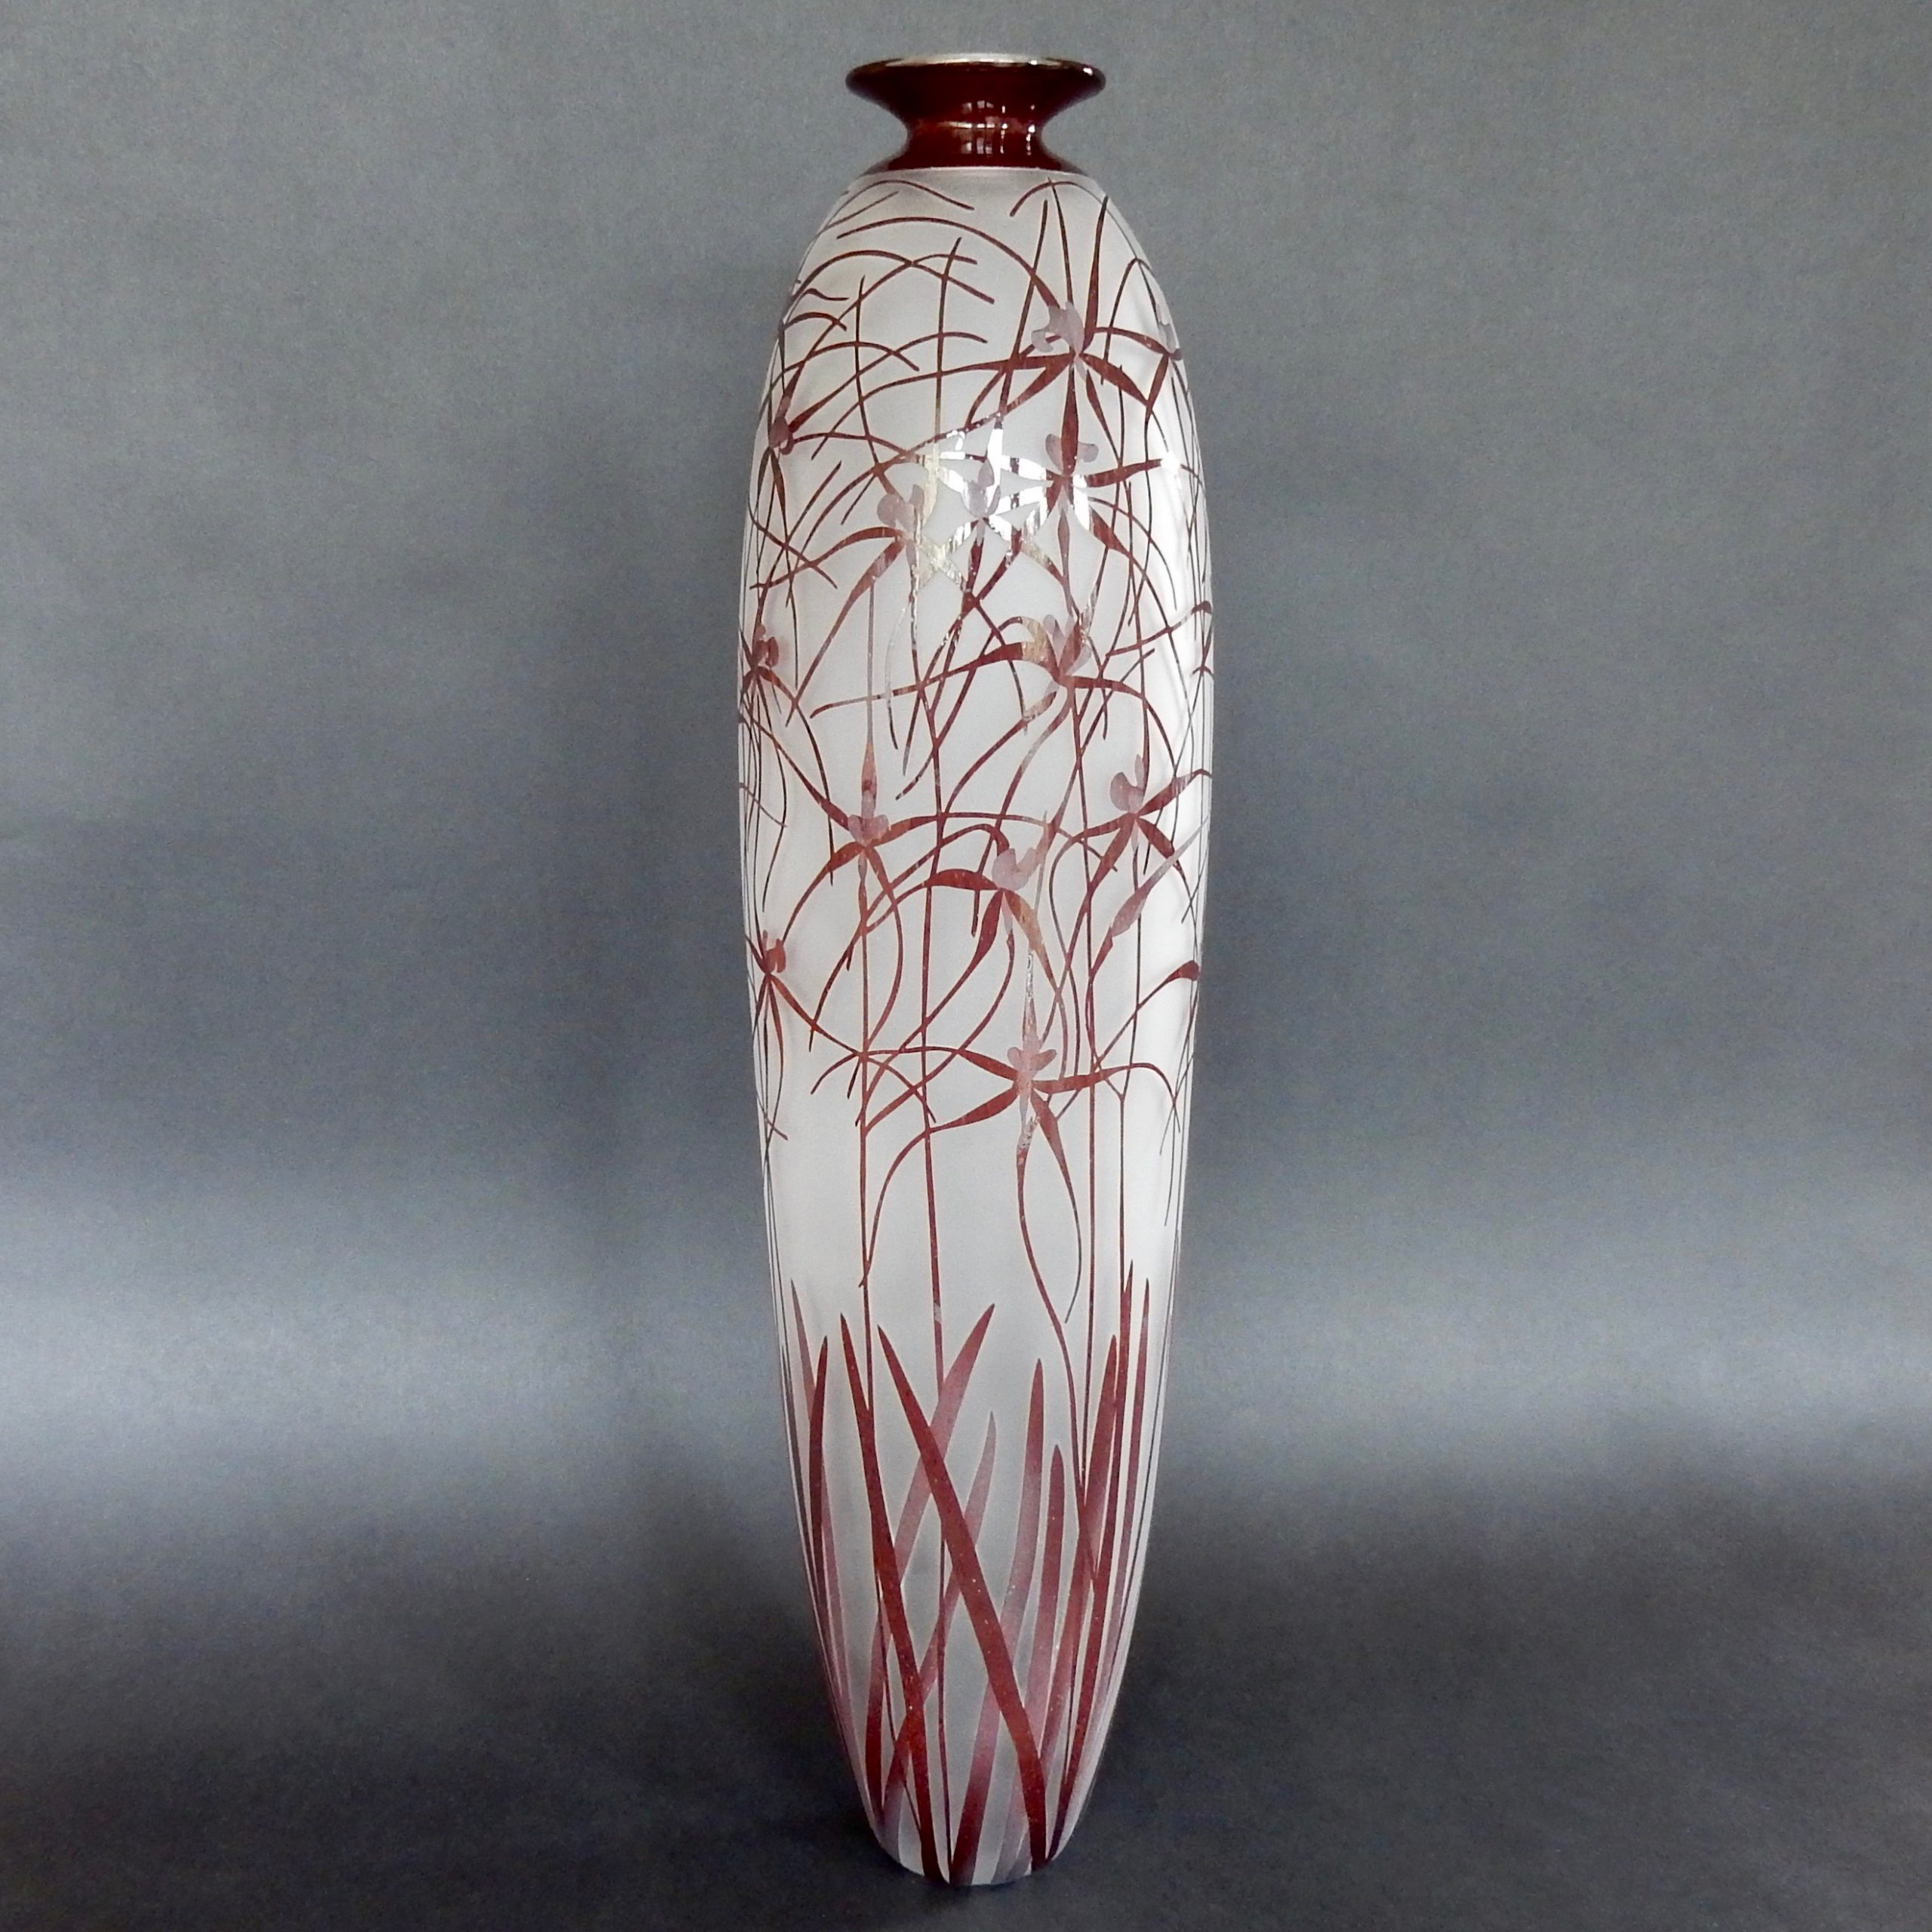 Red spider orchid vase. Caladenia sp. Blown and etched glass by Amanda Louden.